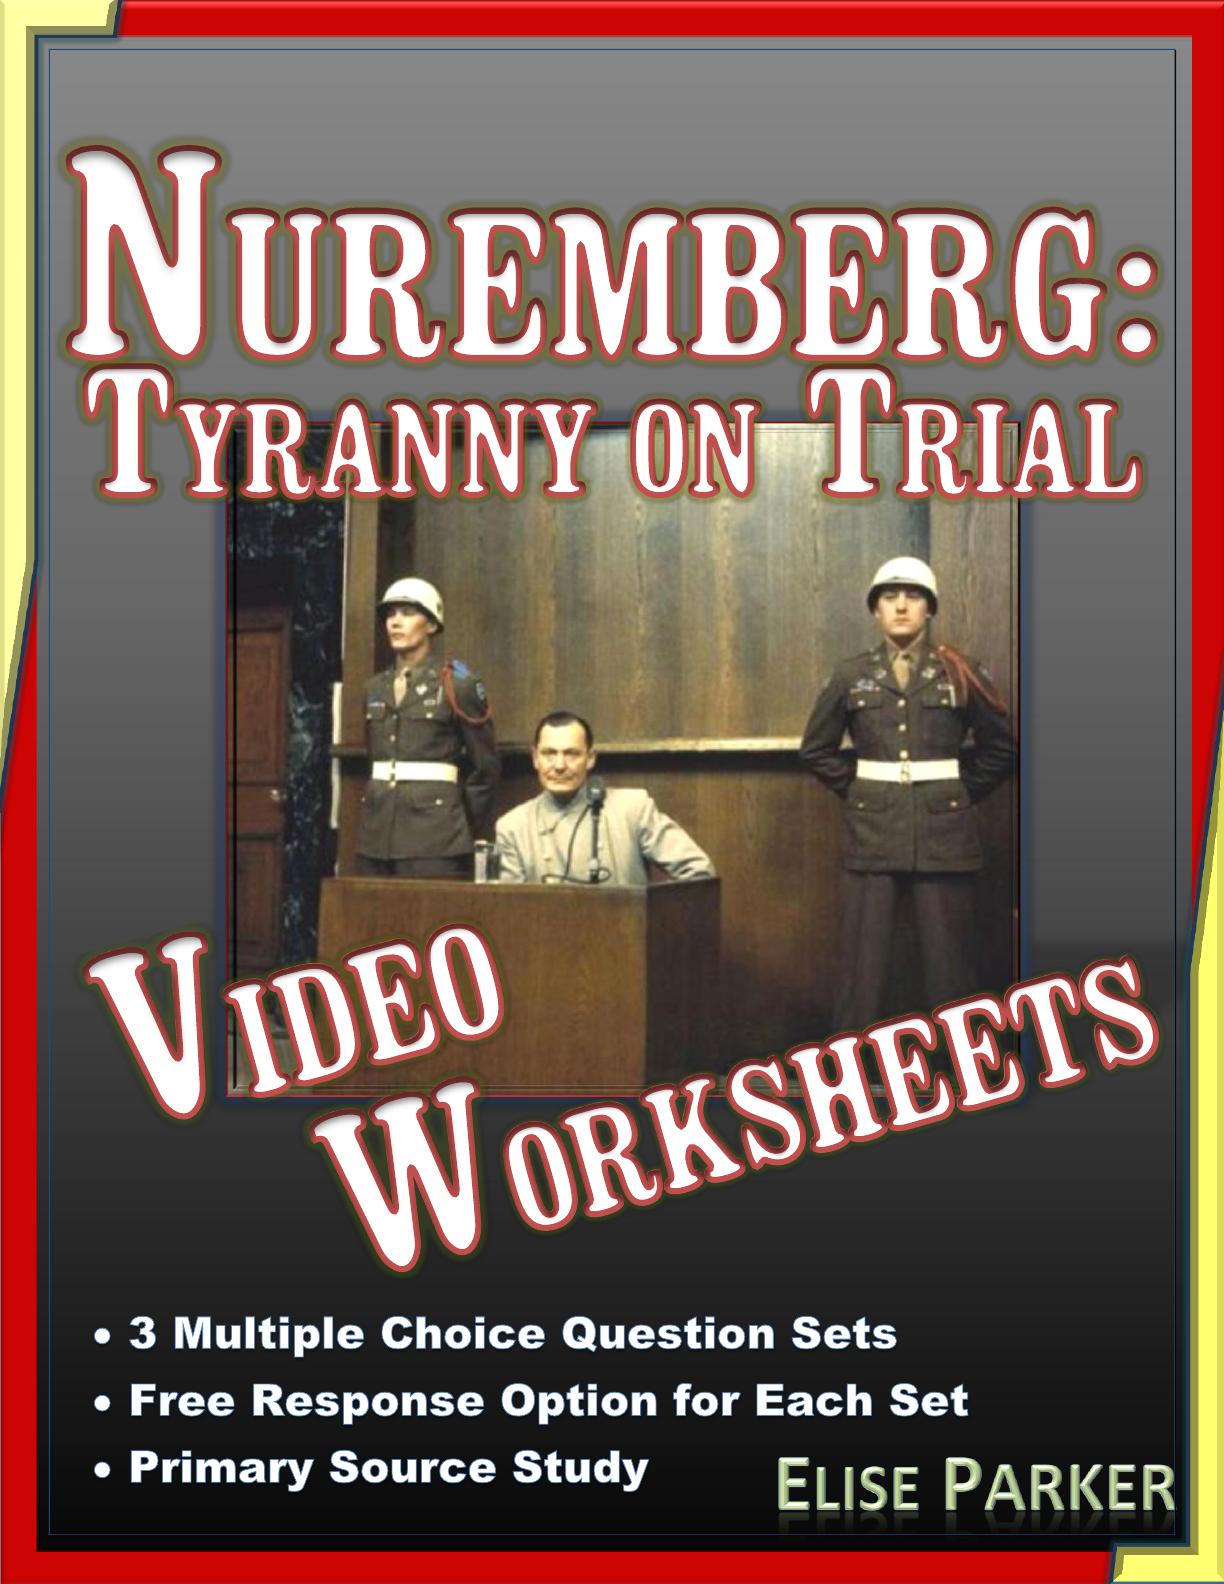 Nuremberg Tyranny On Trial Video Worksheets And Primary